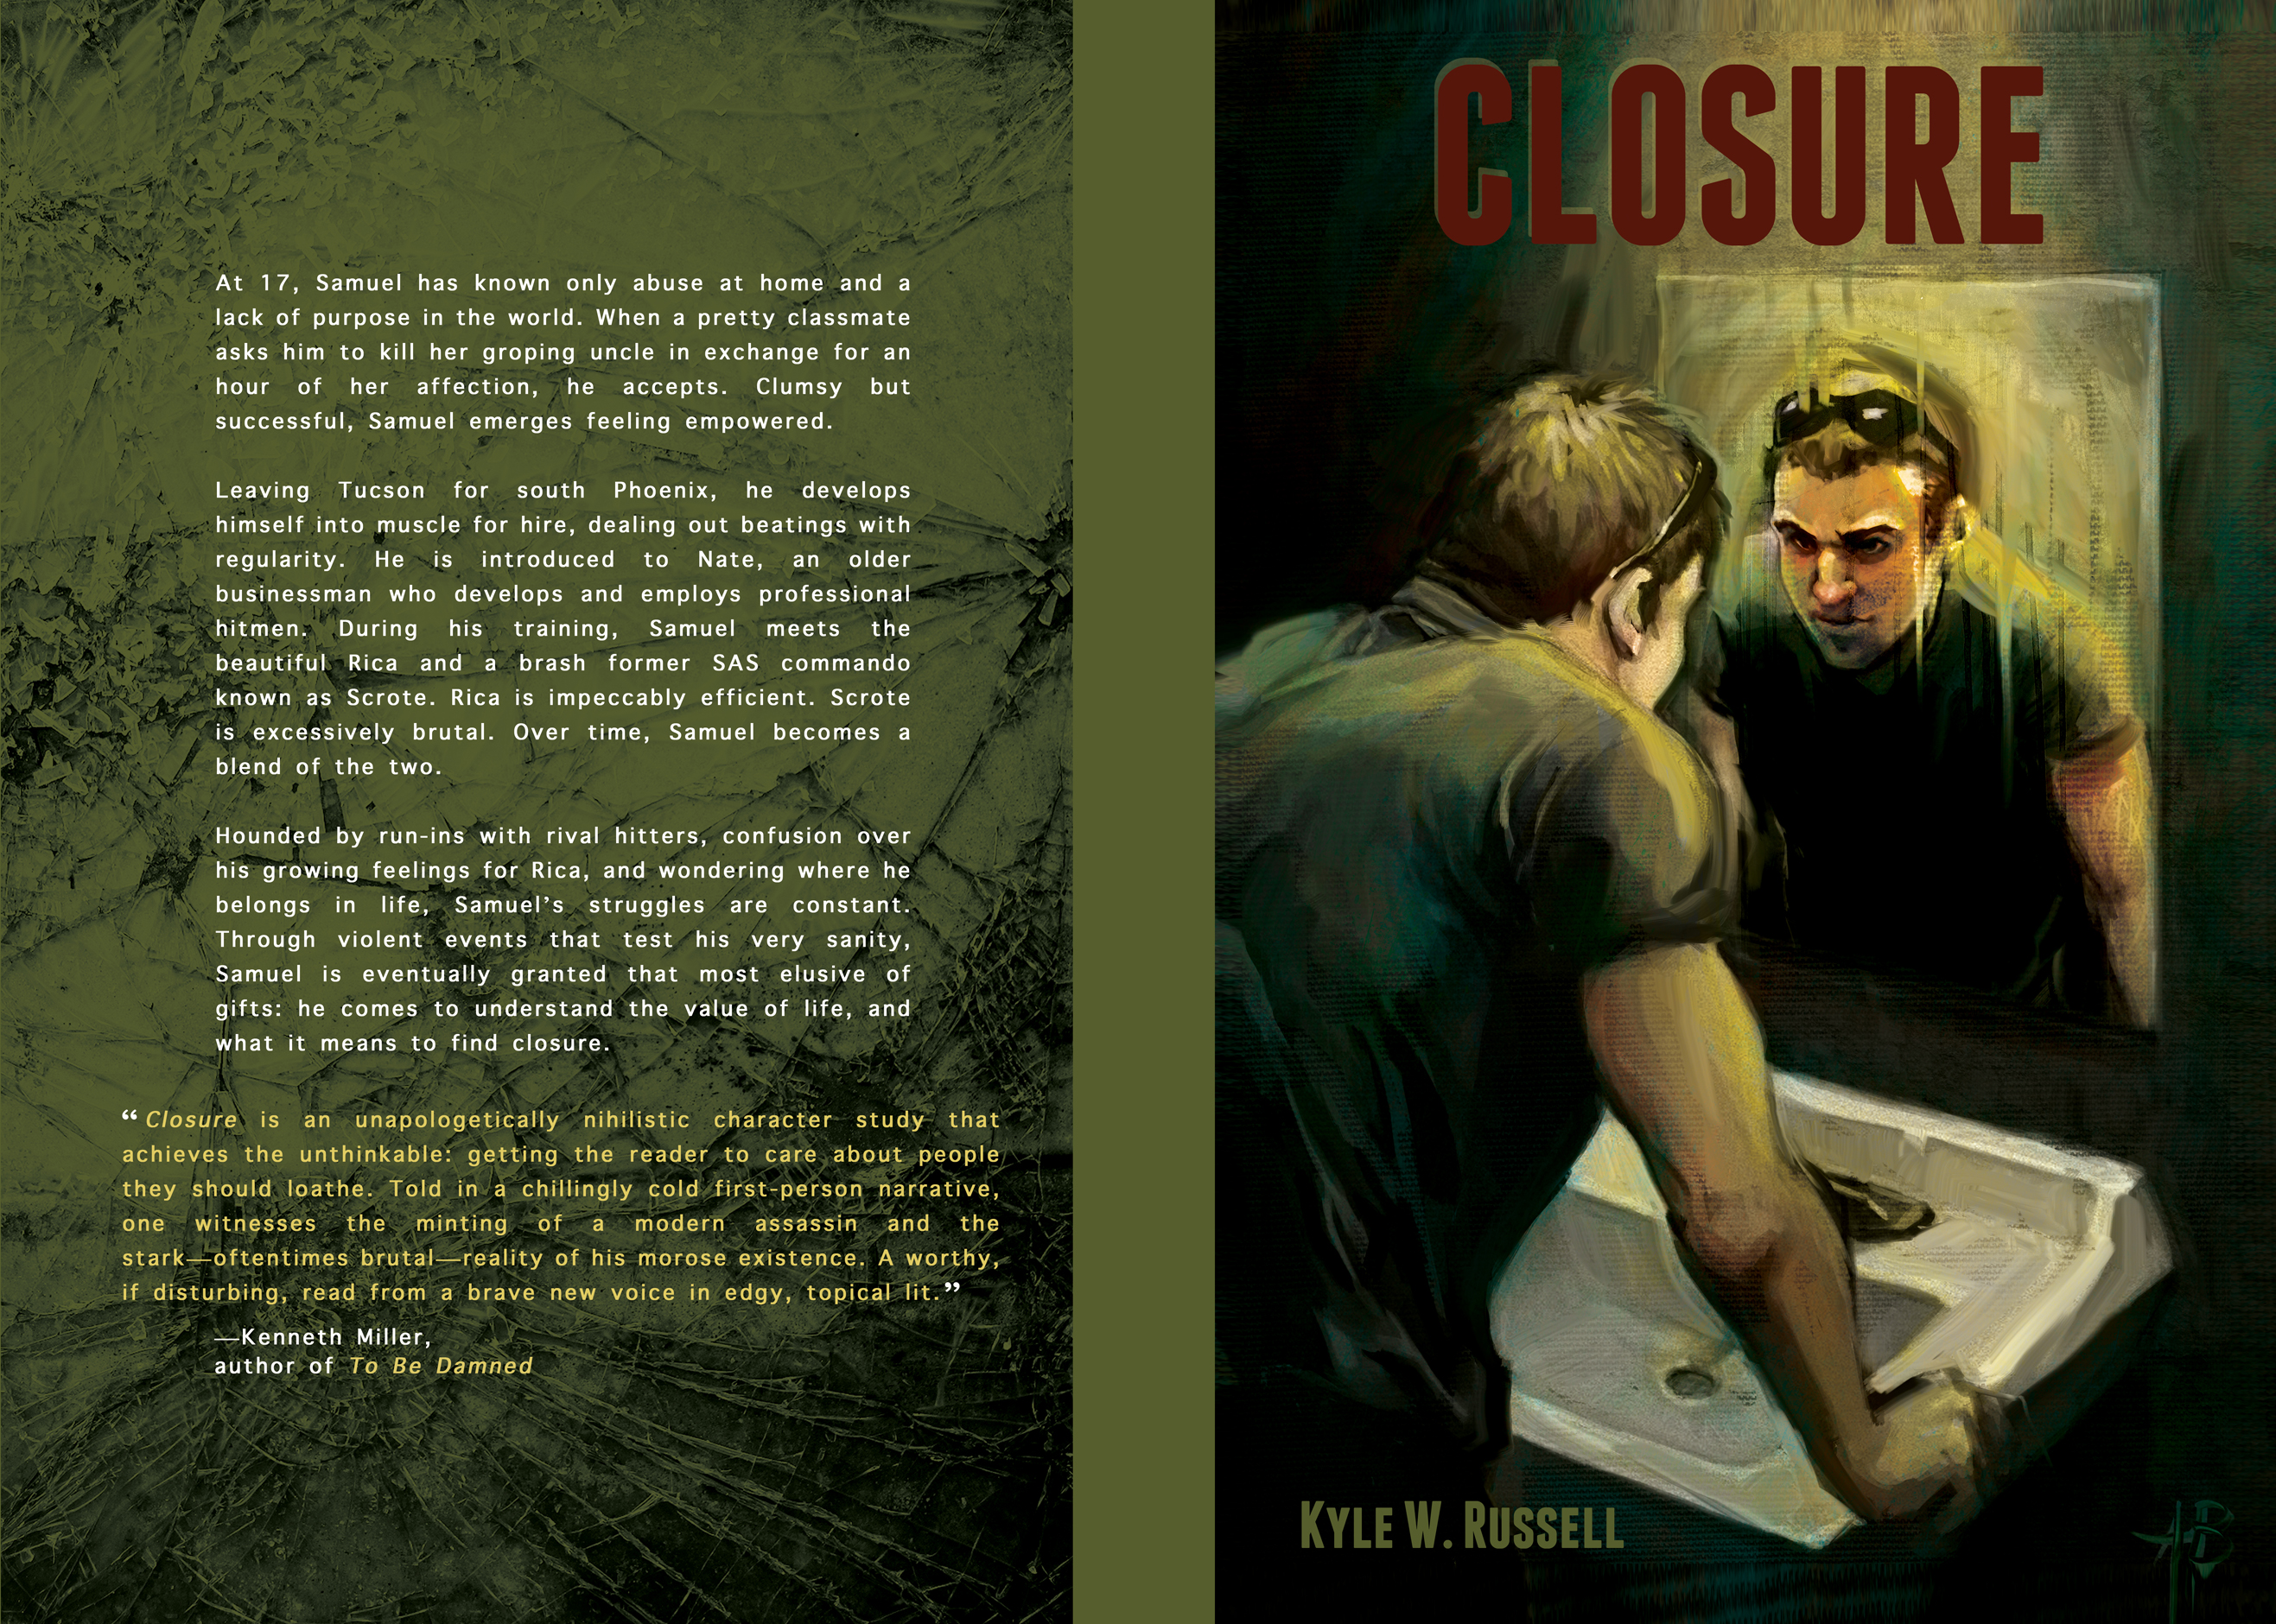 Colsure book jacket design